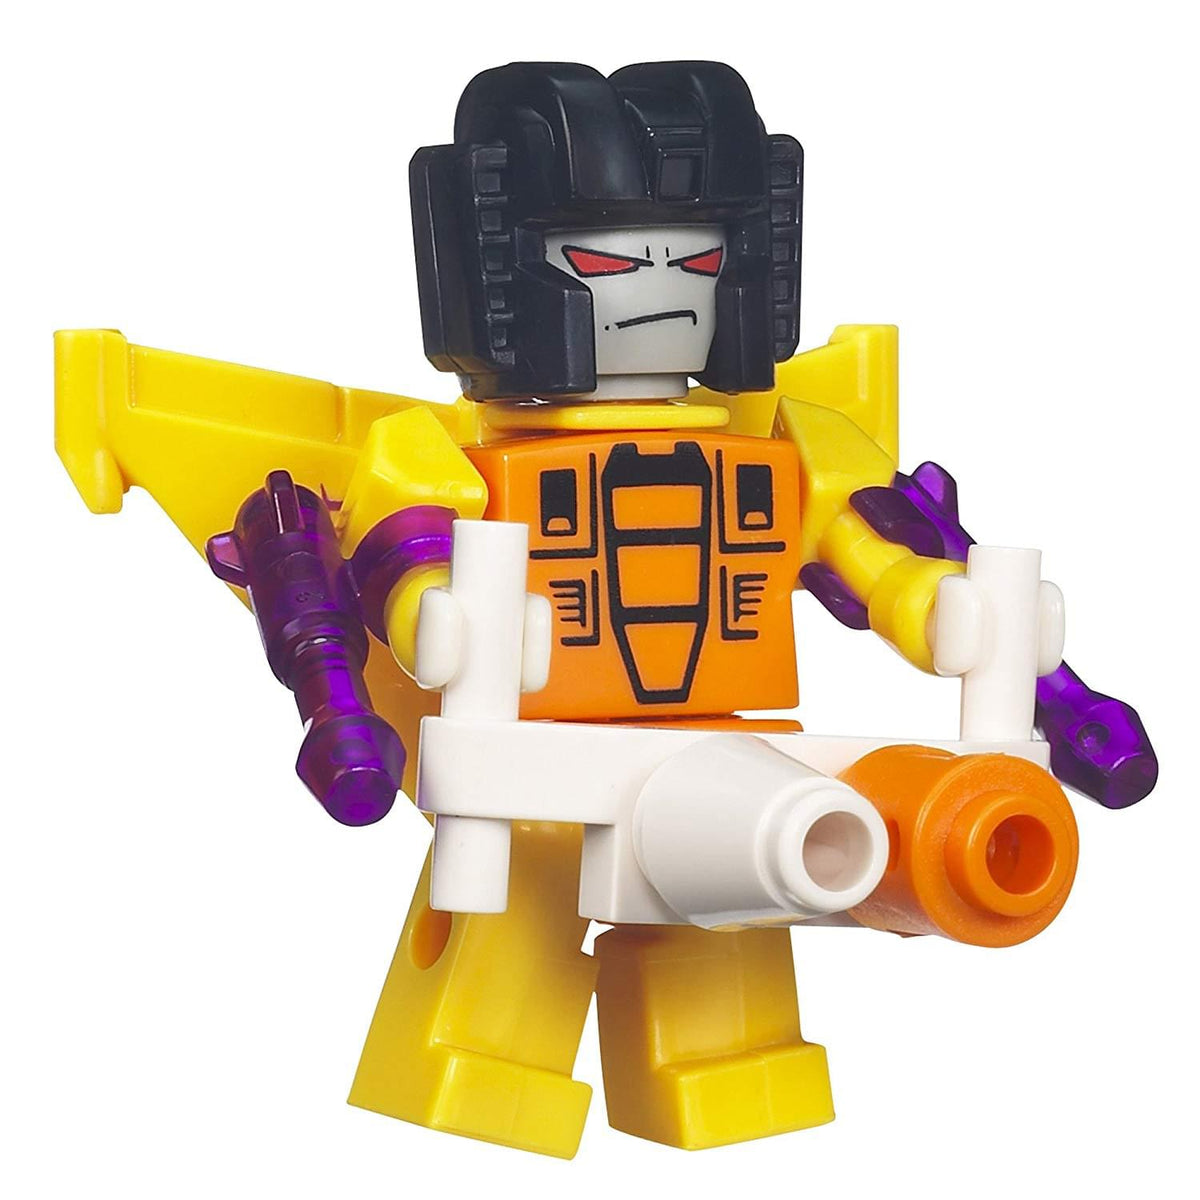 Transformers KRE-O Preview Series Kreon Micro-Changers Figure - One Random